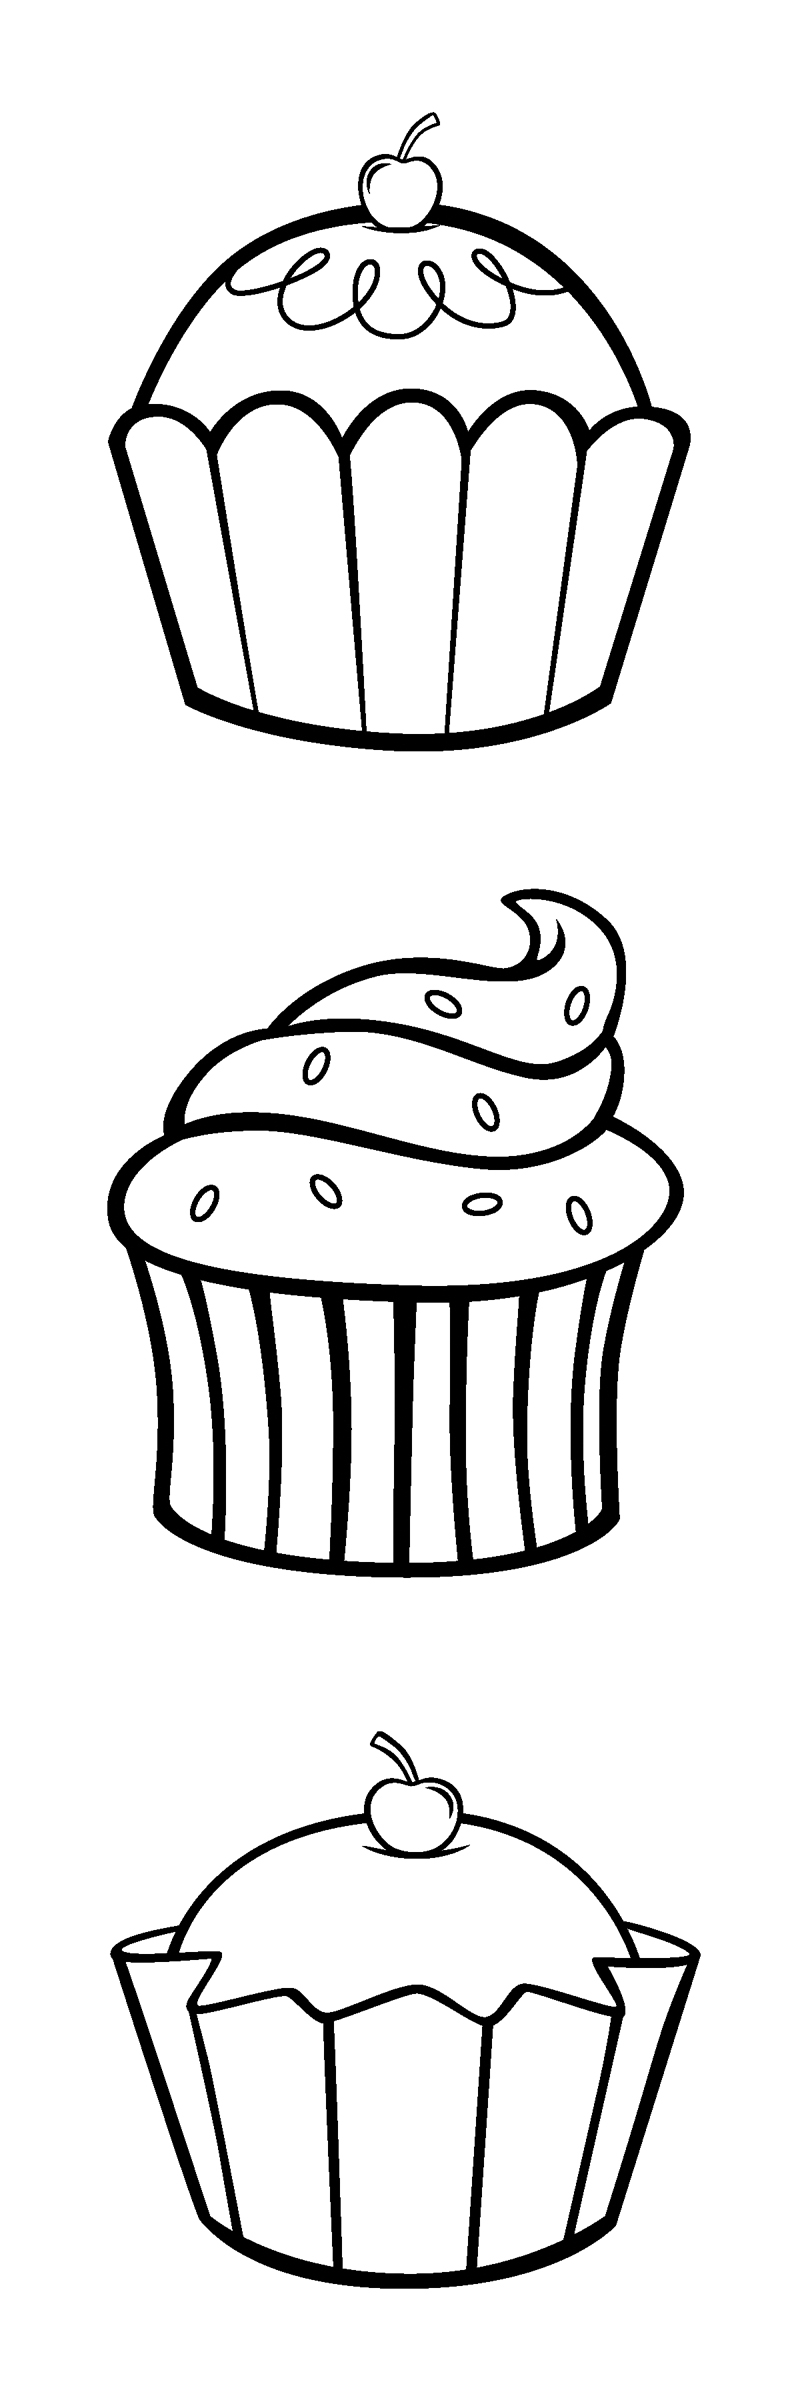 easy cupcake coloring pages cool simple cupcake coloring page cupcake coloring pages easy pages coloring cupcake